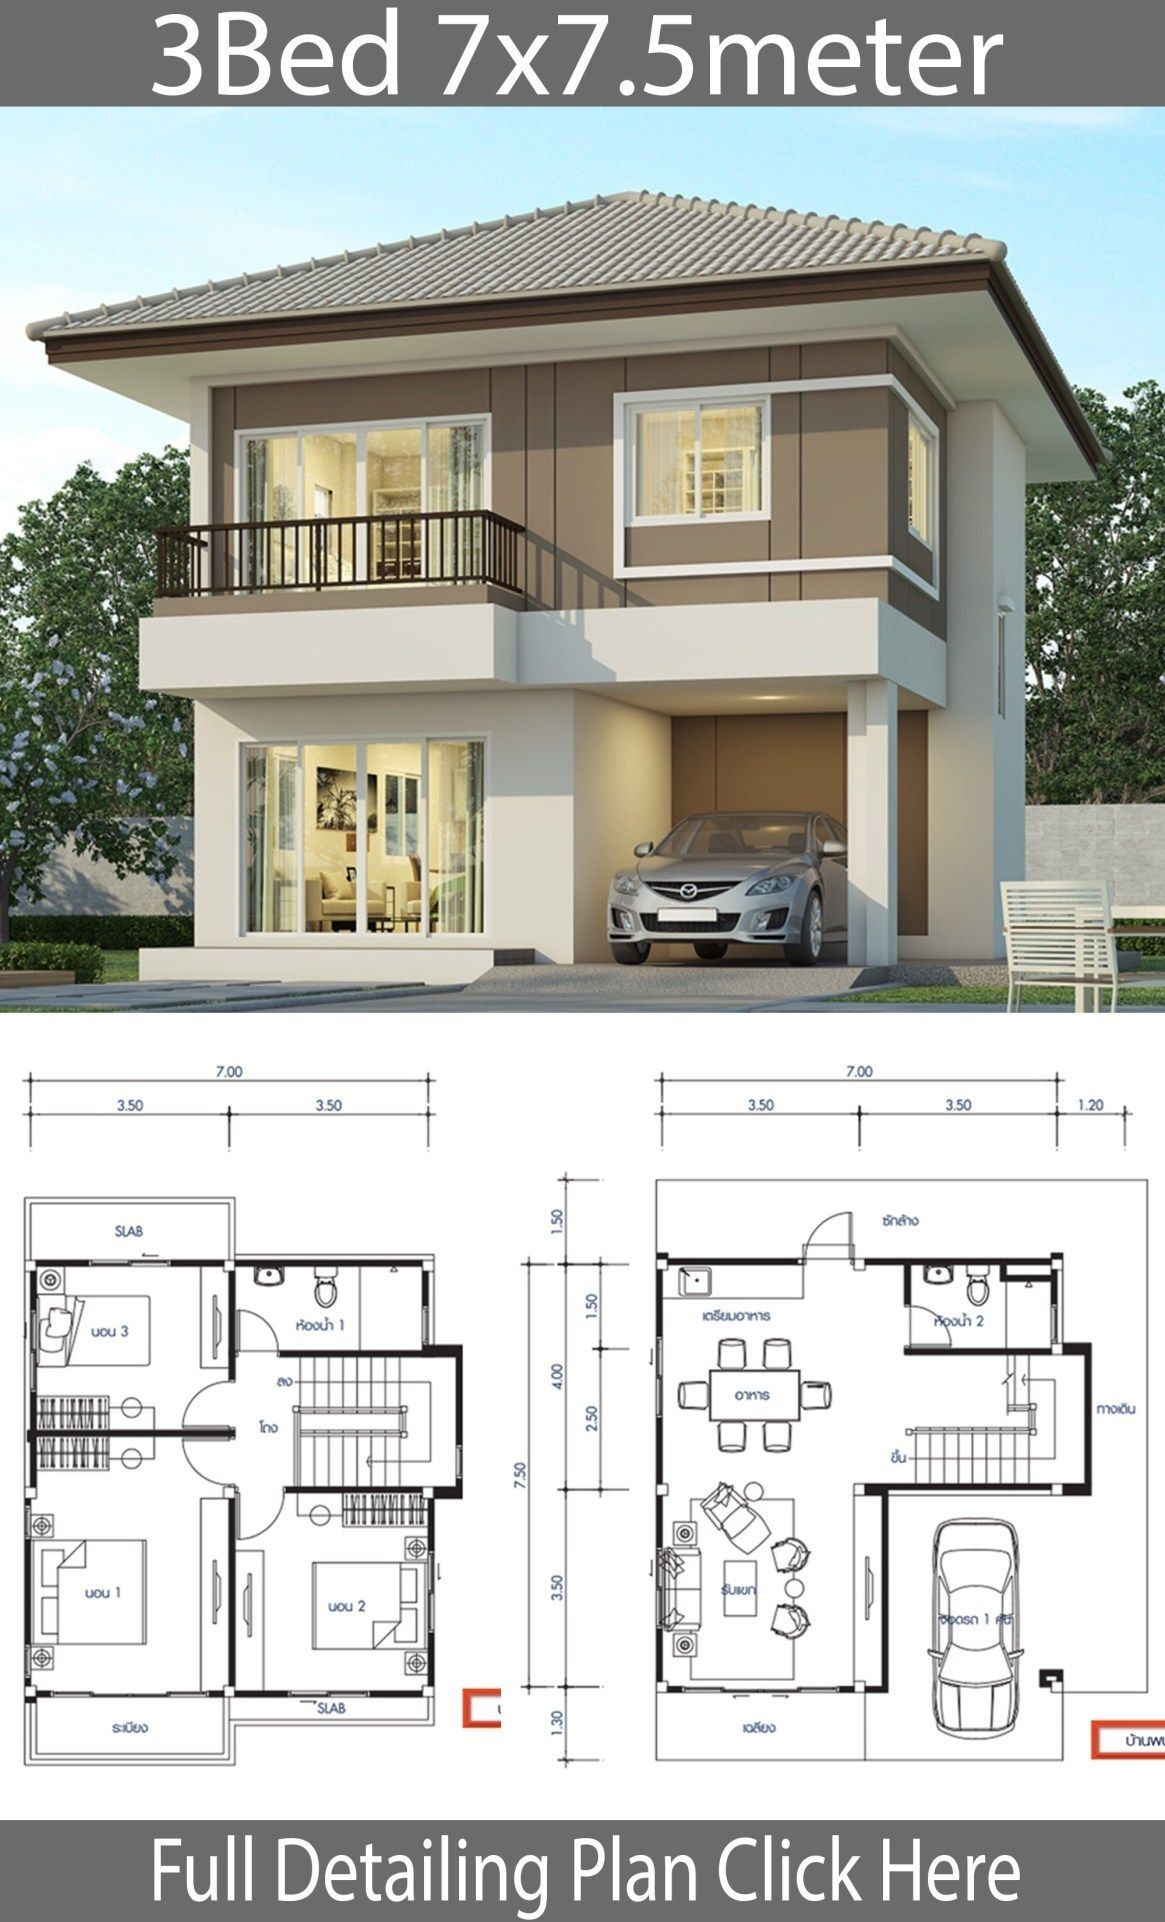 27 Top House Design Ideas And Plans In 2020 Bungalow House Design Duplex House Design 2 Storey House Design